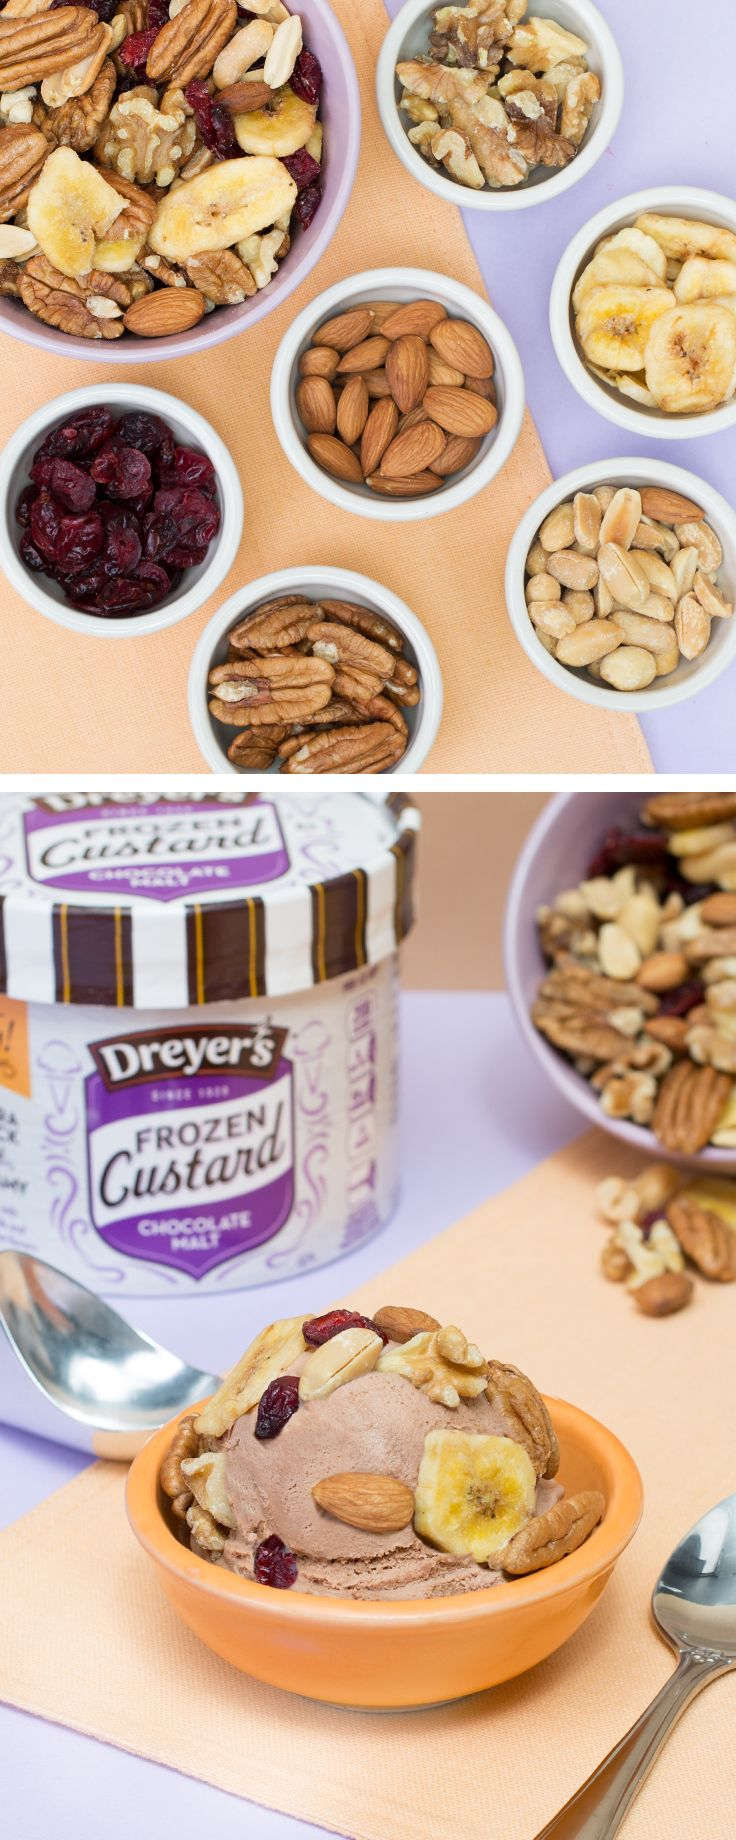 Dreyer's Frozen Custard & Healthy Trail Mix: When your Frozen Custard is as extra thick and creamy as ours, sometimes the best topping is a healthy one. Try mixing peanuts, almonds, pecans, walnuts, dried cranberries and dried banana chips together for a deliciously salty and simple Frozen Custard topping that your kids will never forget!